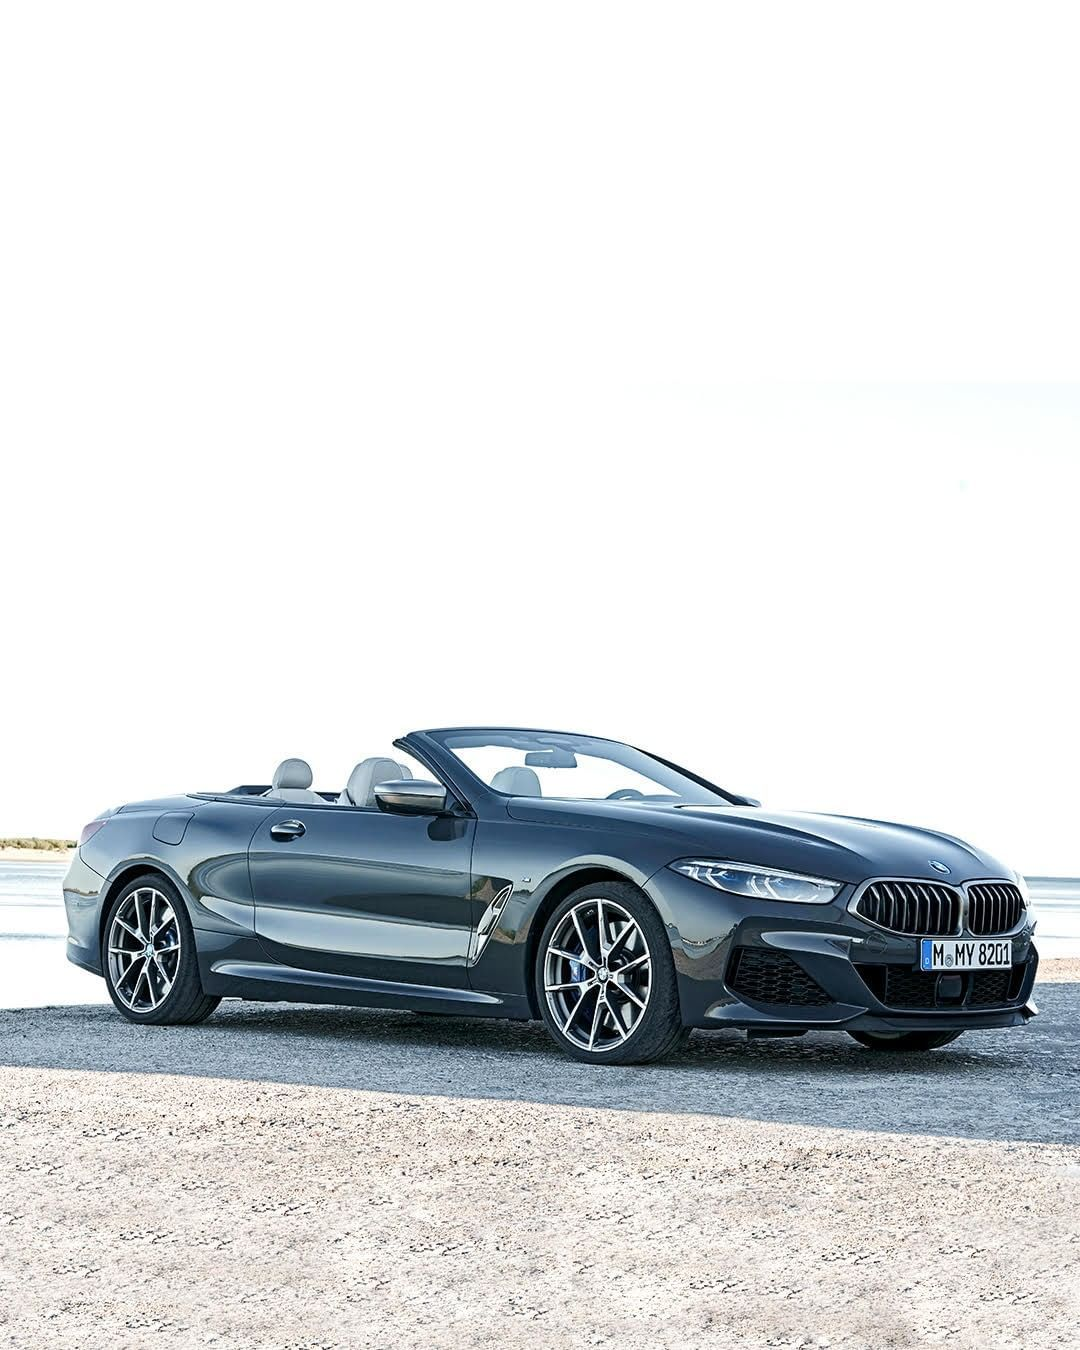 Definitely Got The Look The 8 Bmw The8 8series Convertible